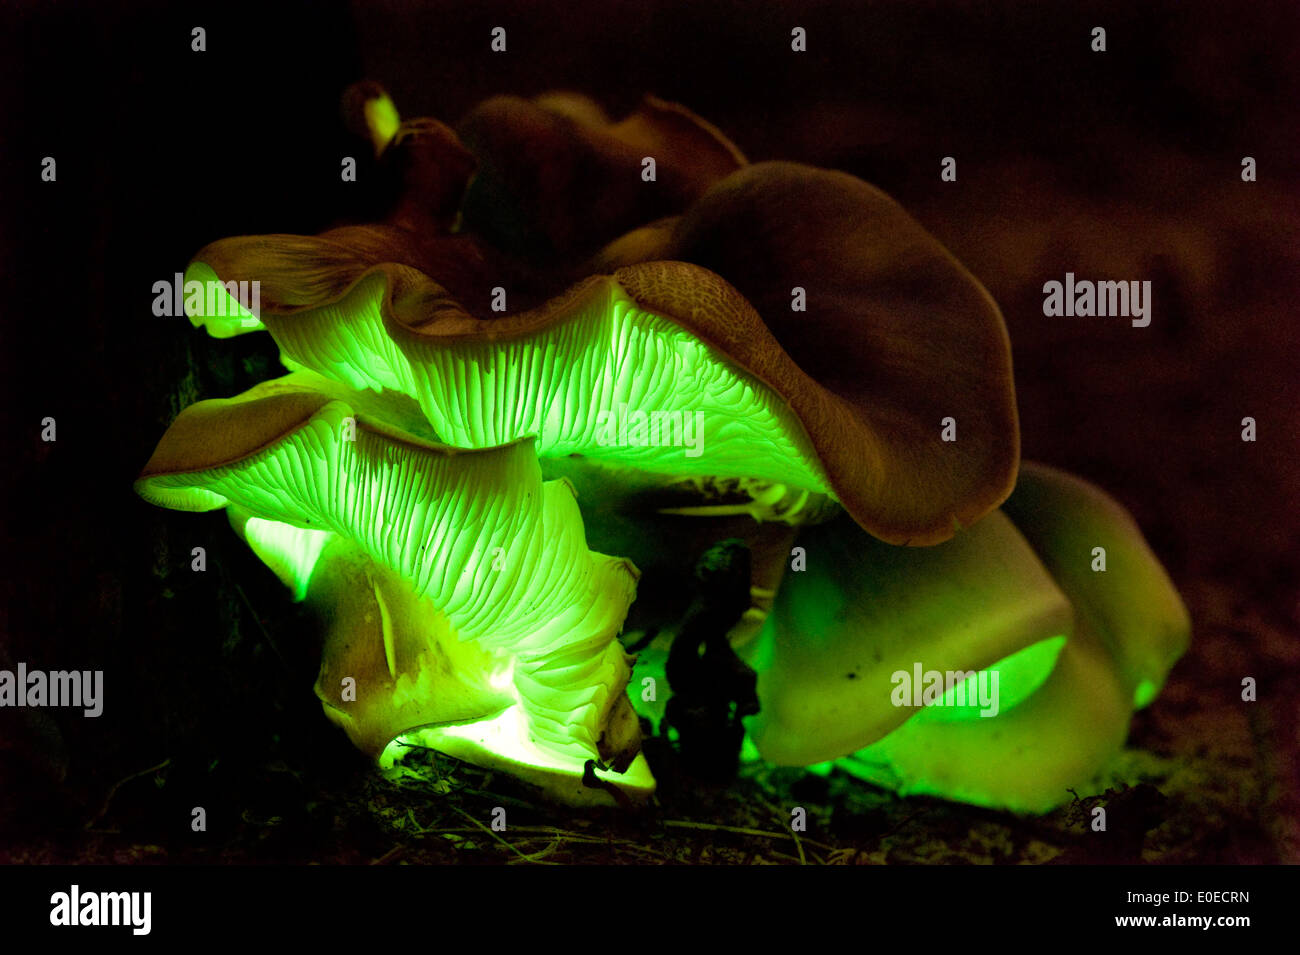 The  Australian Ghost fungus (Omphalotus nidiformis) is a luminous mushroom which glows in the dark - Stock Image